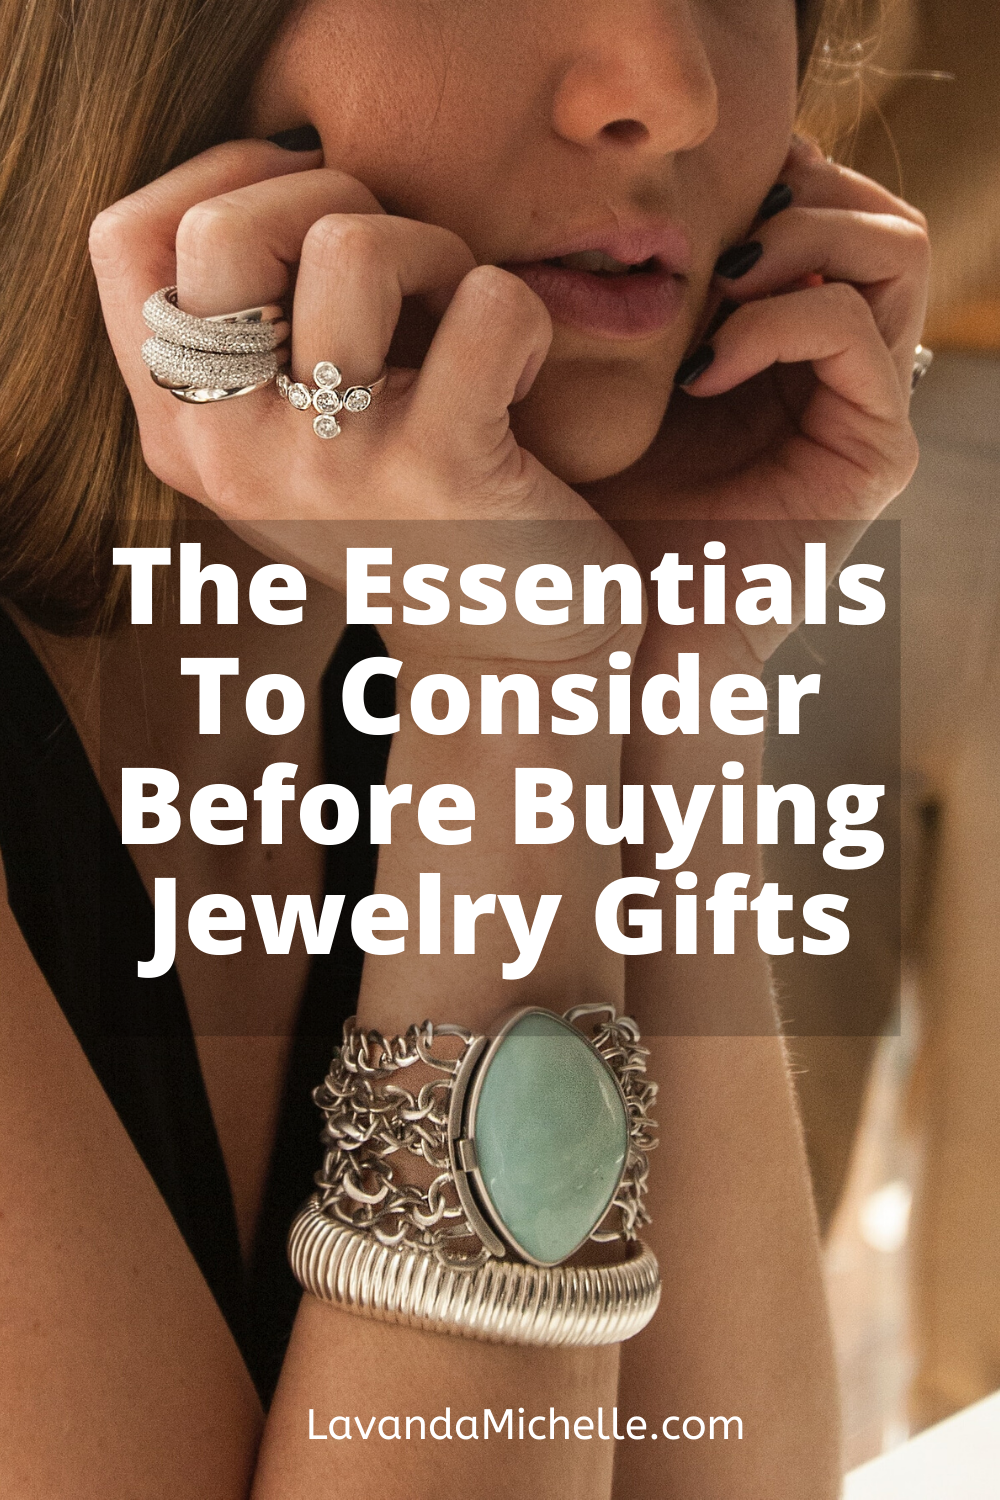 The Essentials To Consider Before Buying Jewelry Gifts